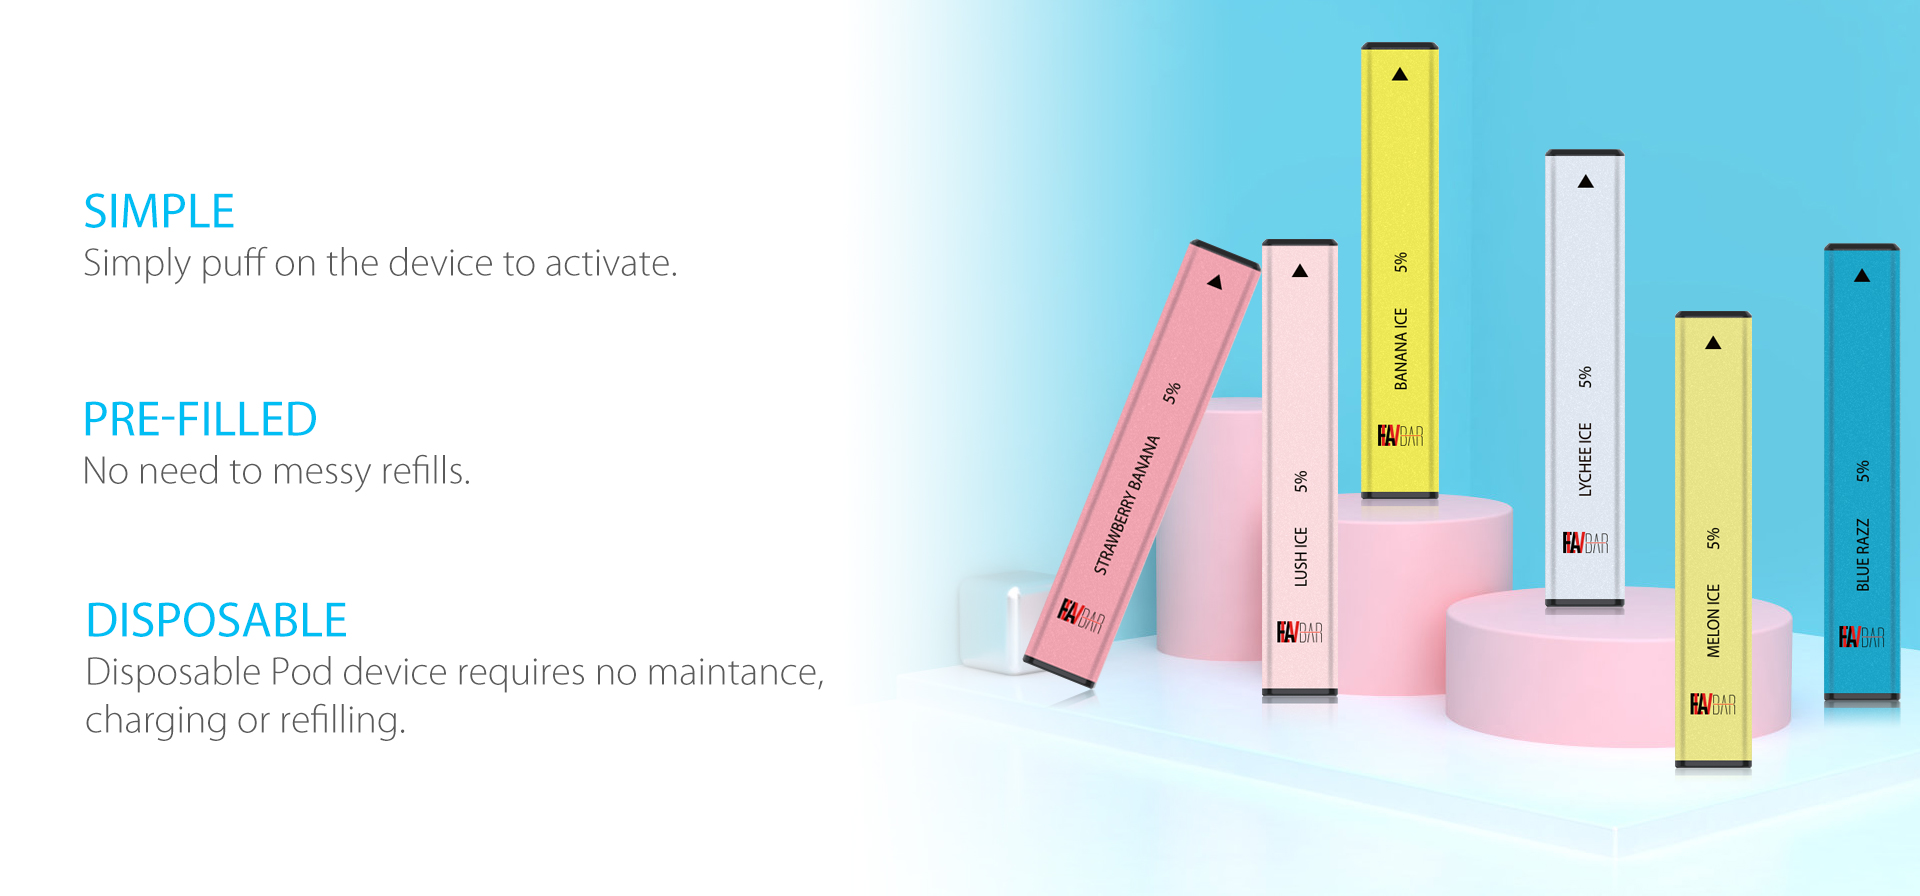 Flavbar v1 pod disposable device requires no maintenance, charging or refilling.